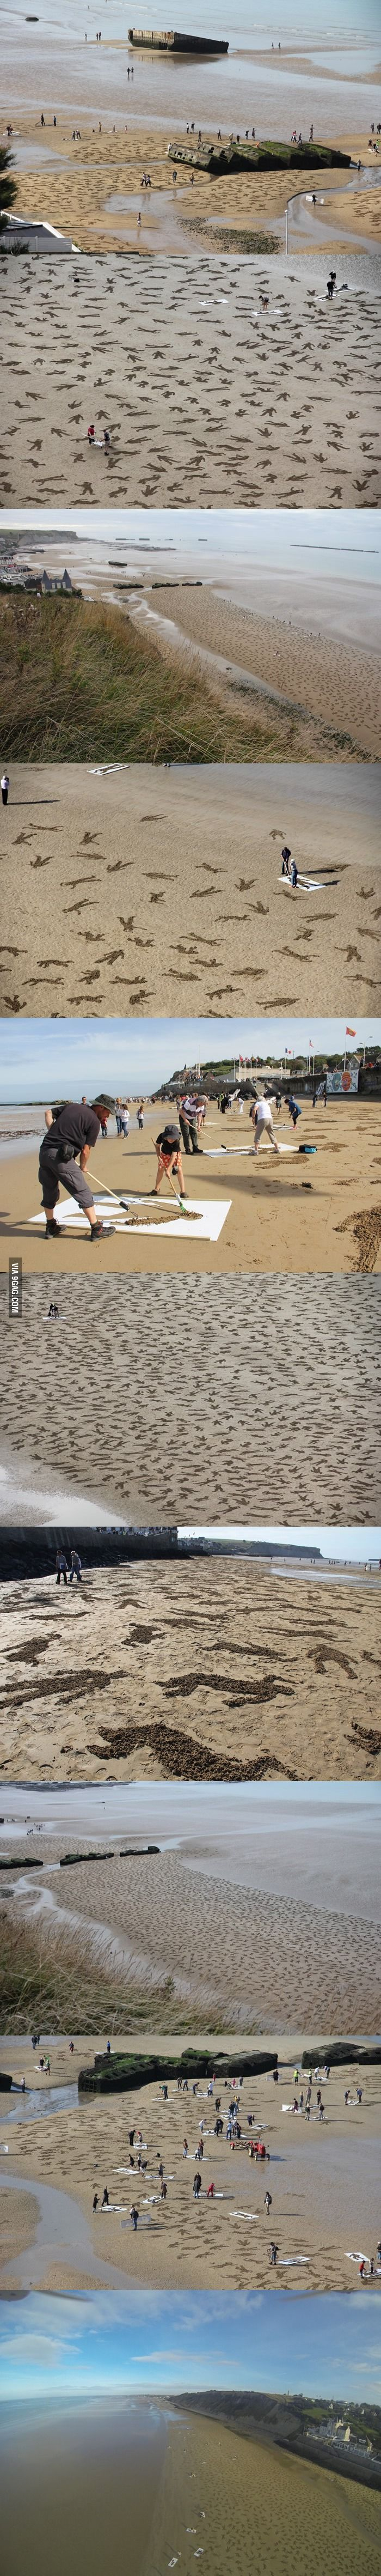 9,000 Fallen Soldiers Etched into the Sand on Normandy Beach to Commemorate Peace Day....more people died on D Day than during the whole war in Iraq/Afghanistan.